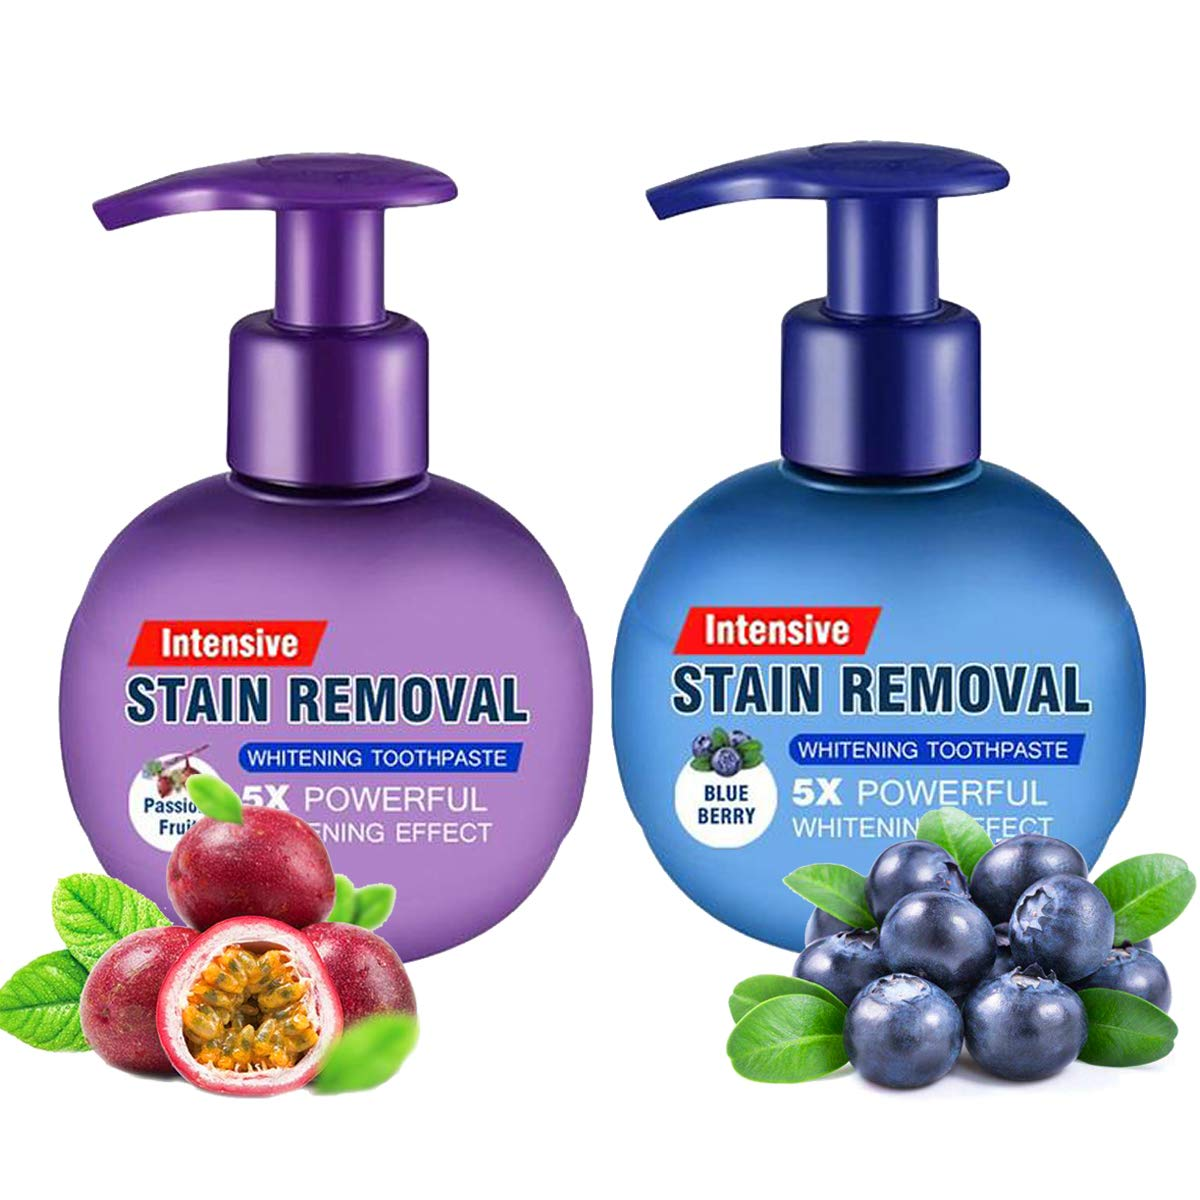 Baking Soda Whitening Toothpaste,Intensive Stain Removal Whitening Toothpaste Strengthening Toothpastes Strong Cleaning Power Natural Stain Remover Fluoride-Free Toothpaste(Blueberry+Passion Fruit)